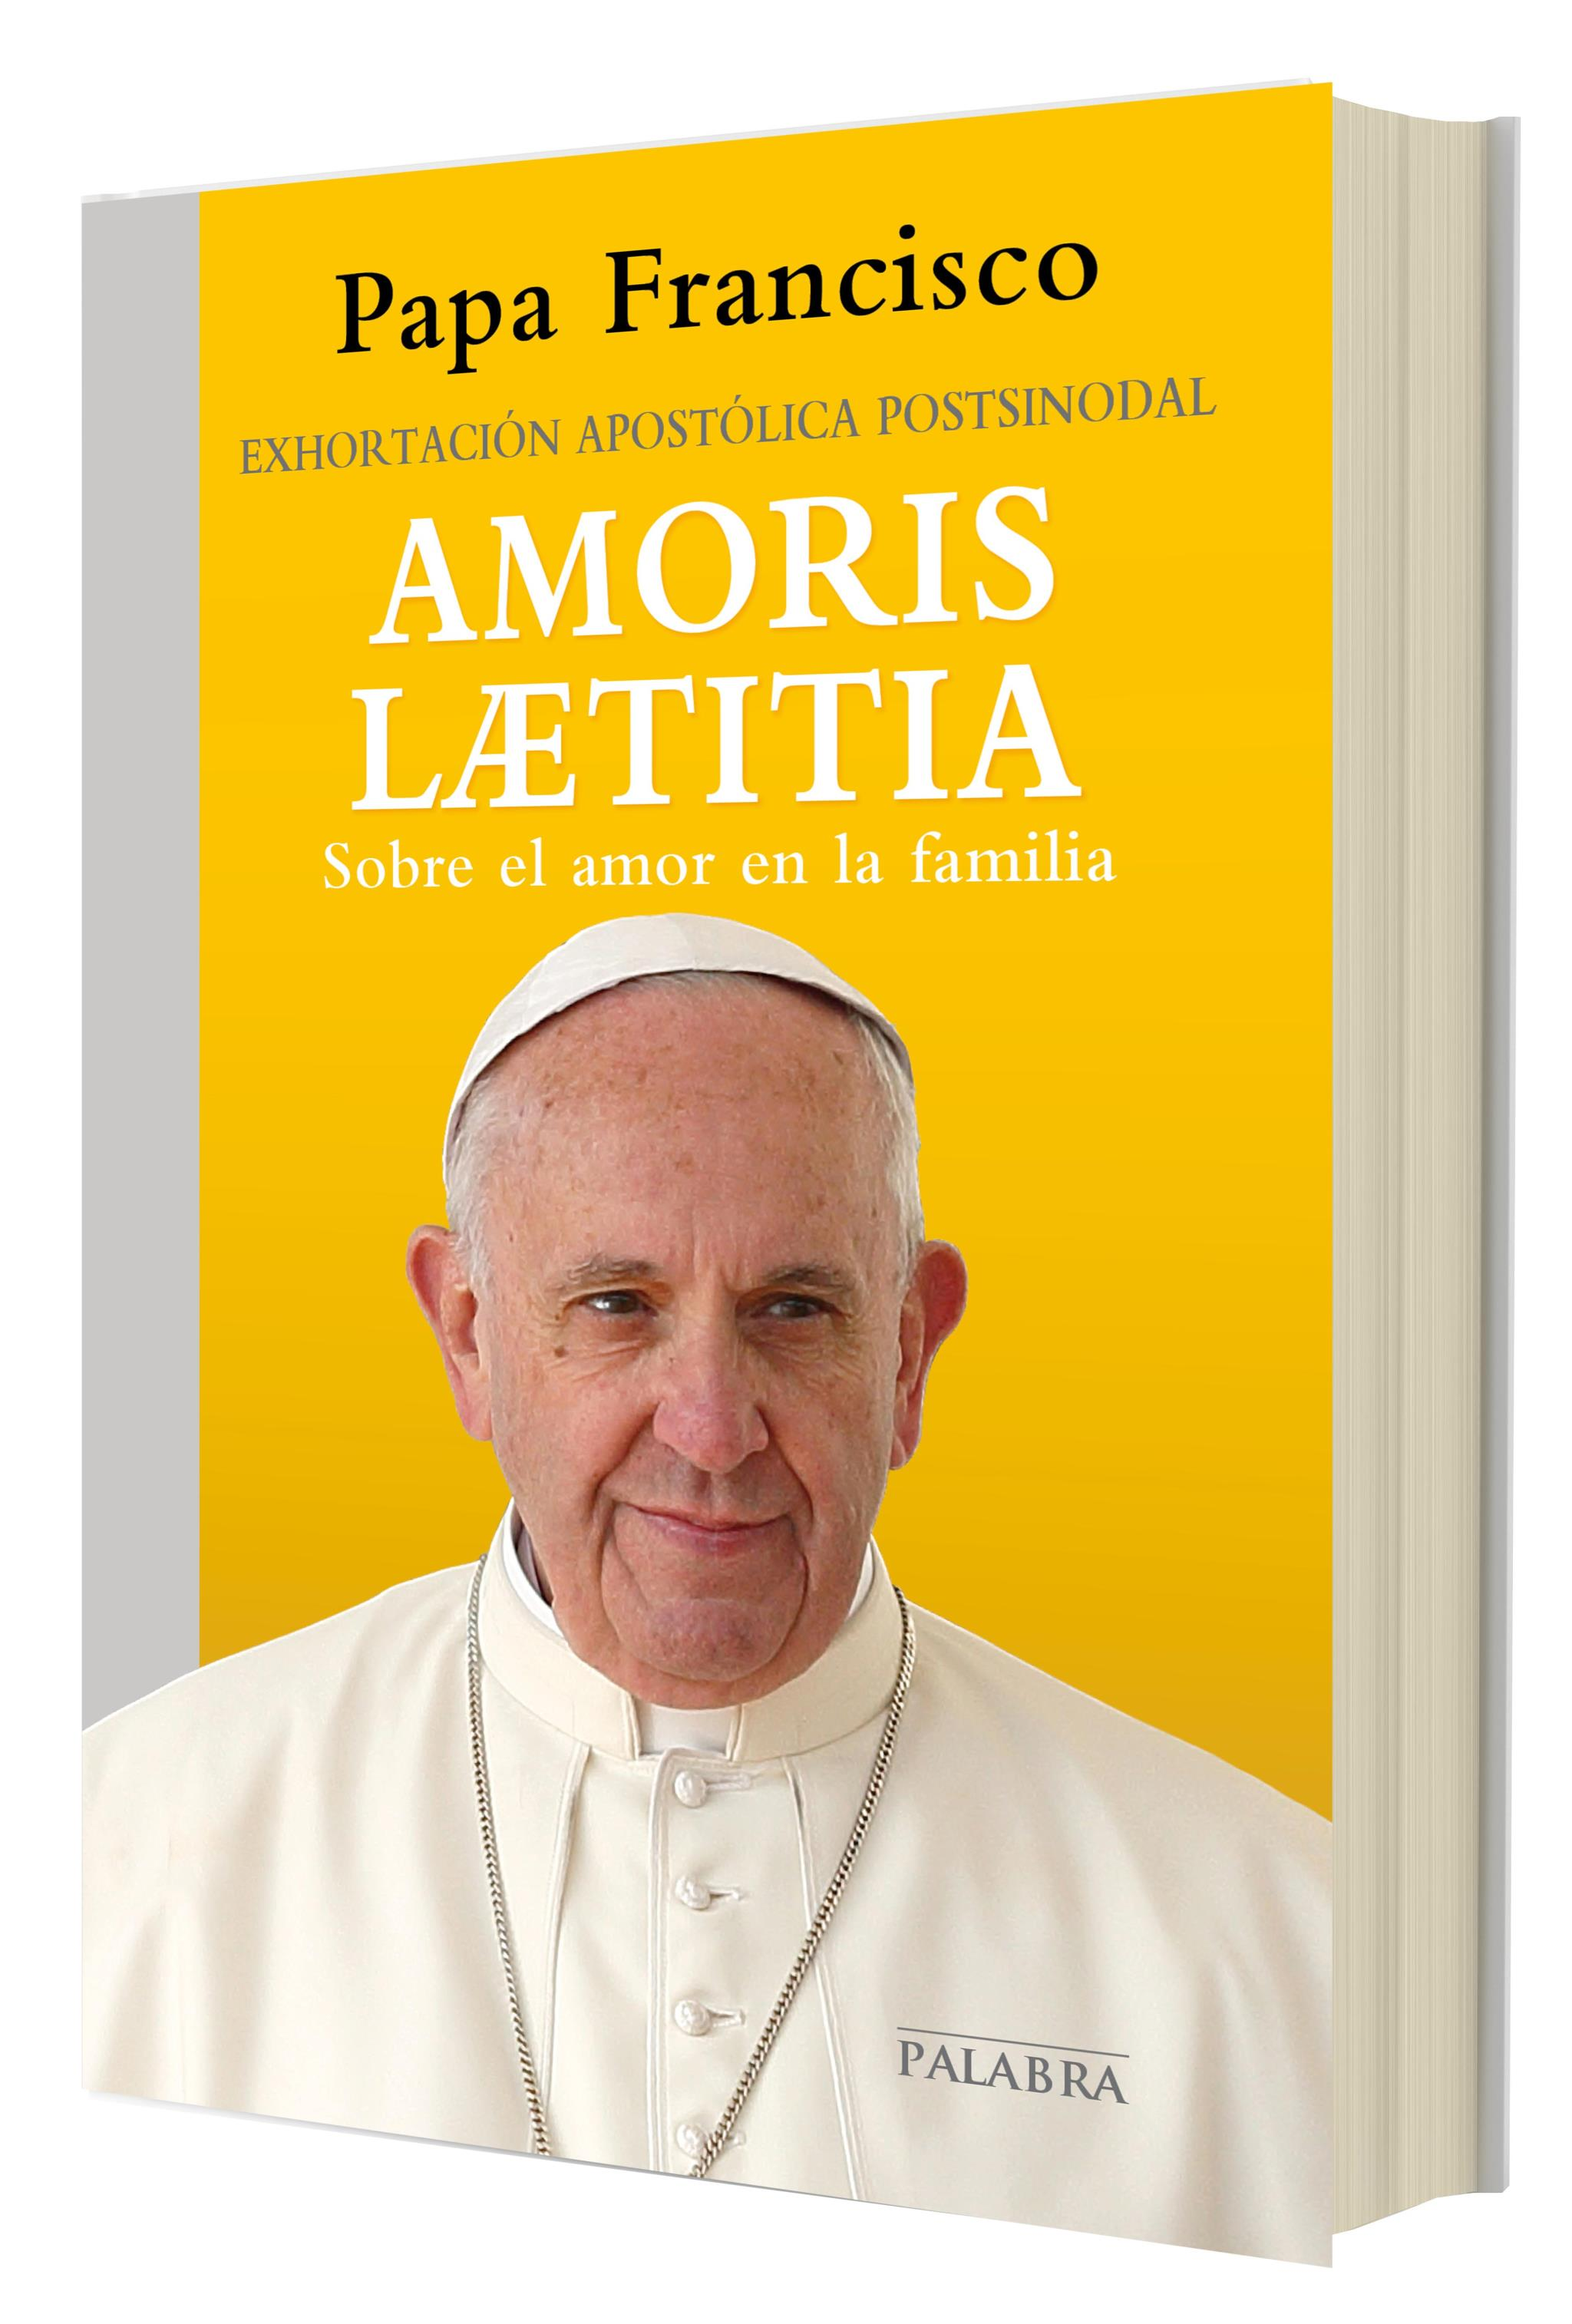 Amoris laetitia, de Papa Francisco